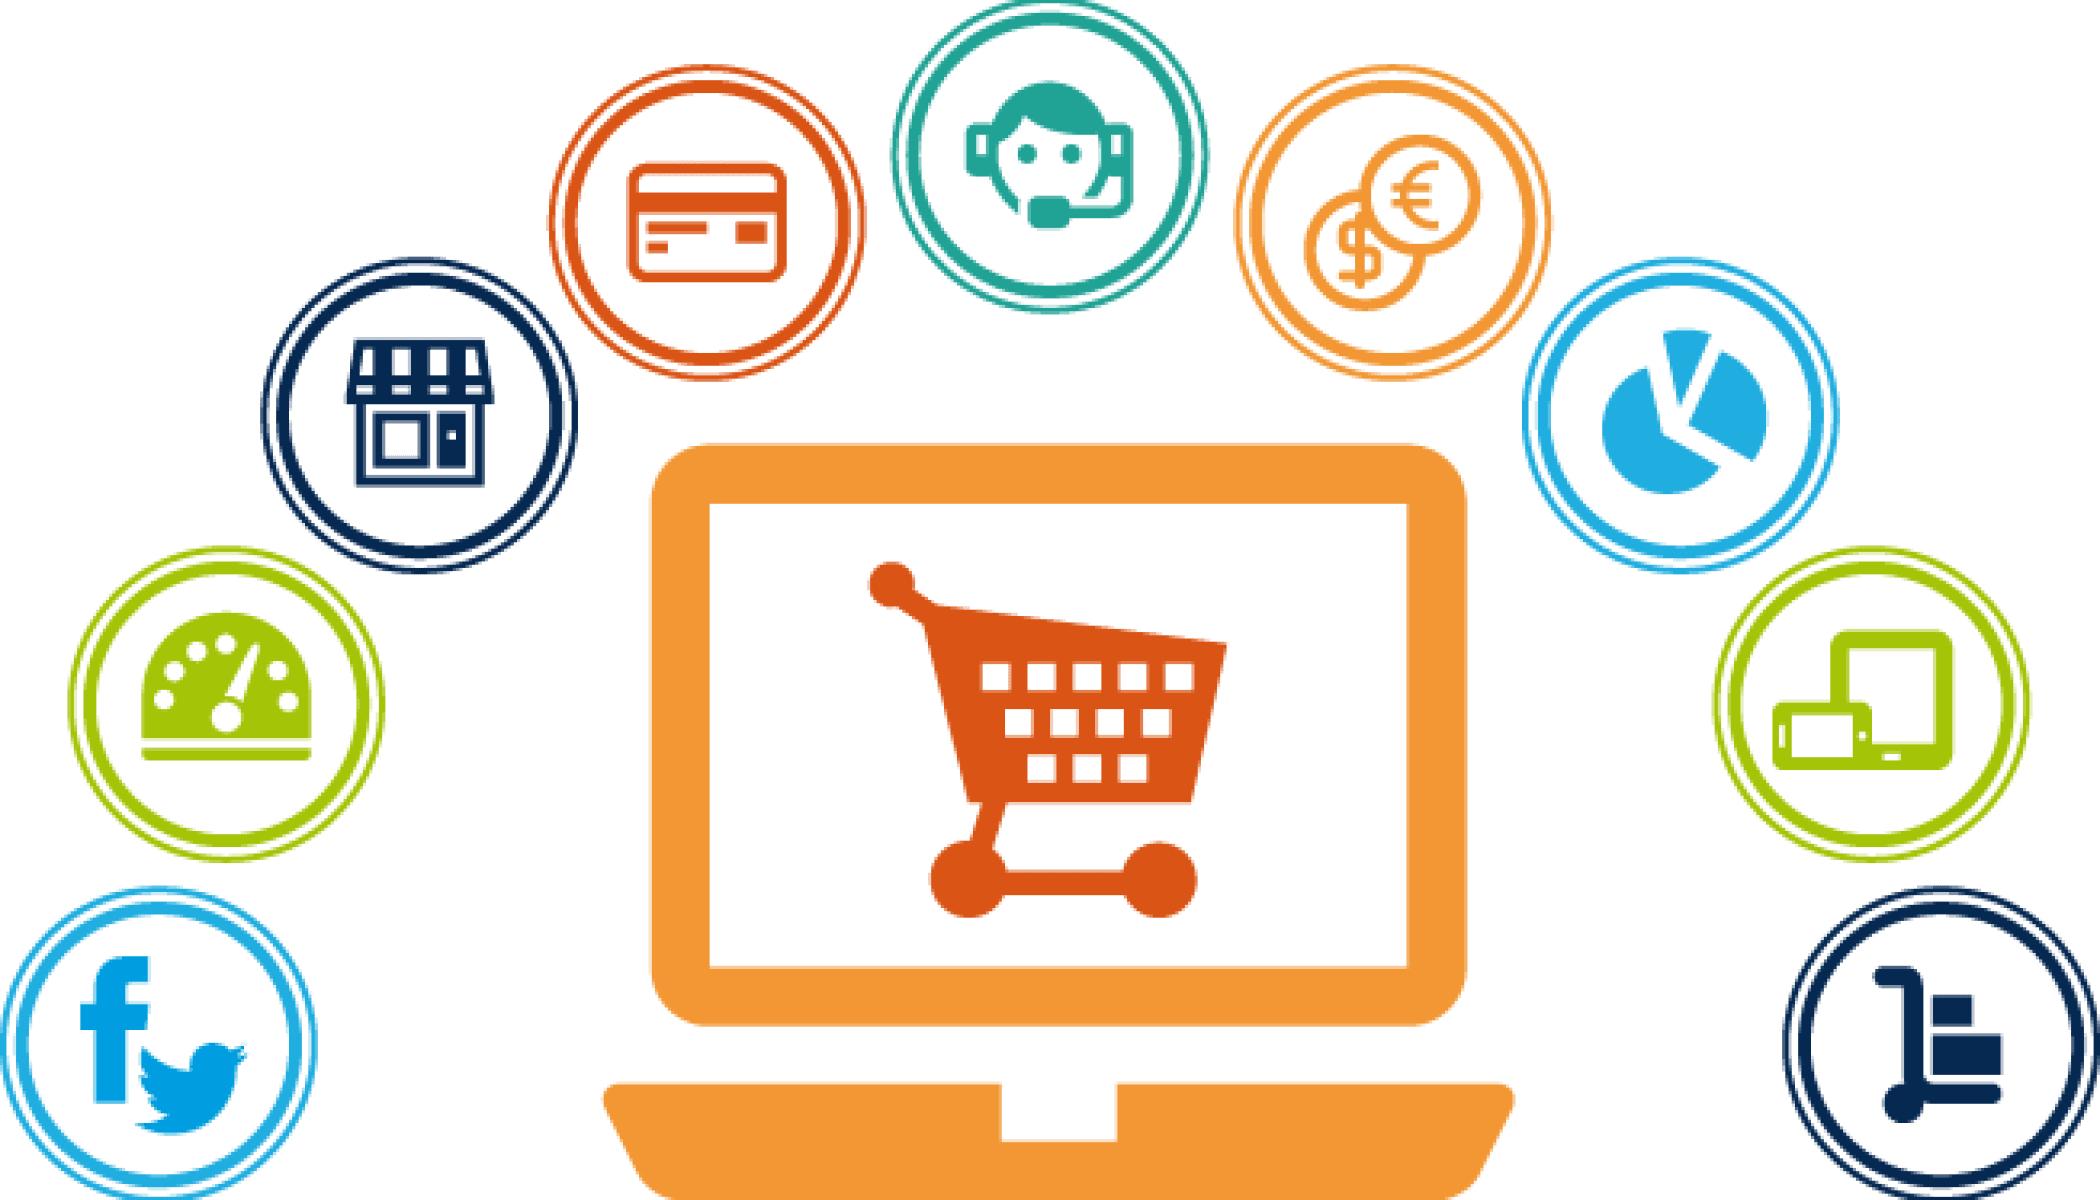 marketing sito e-commerce